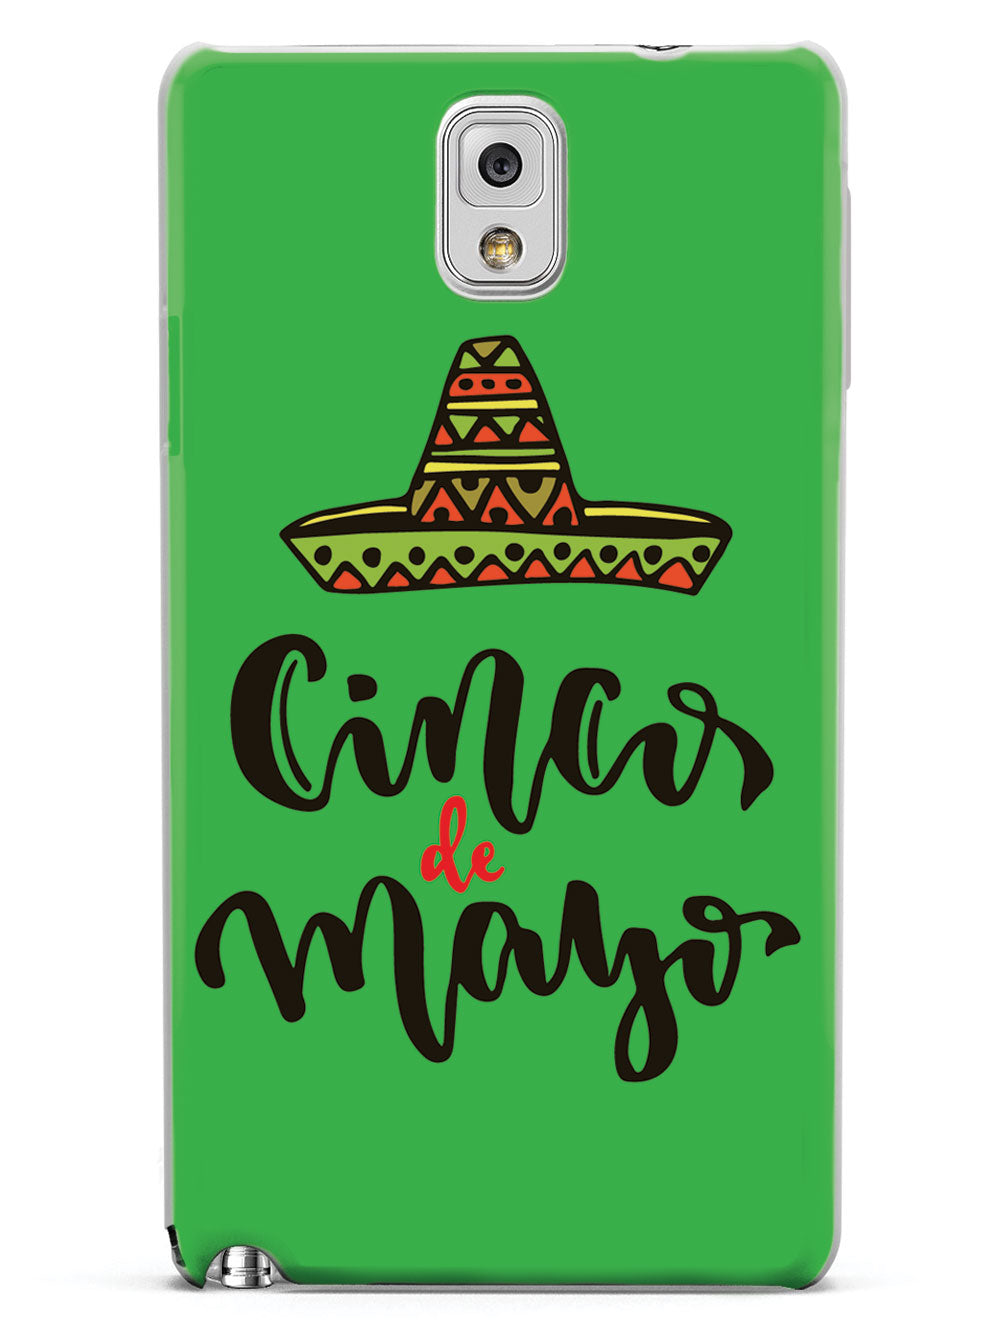 Cinco de Mayo - Green - White Case